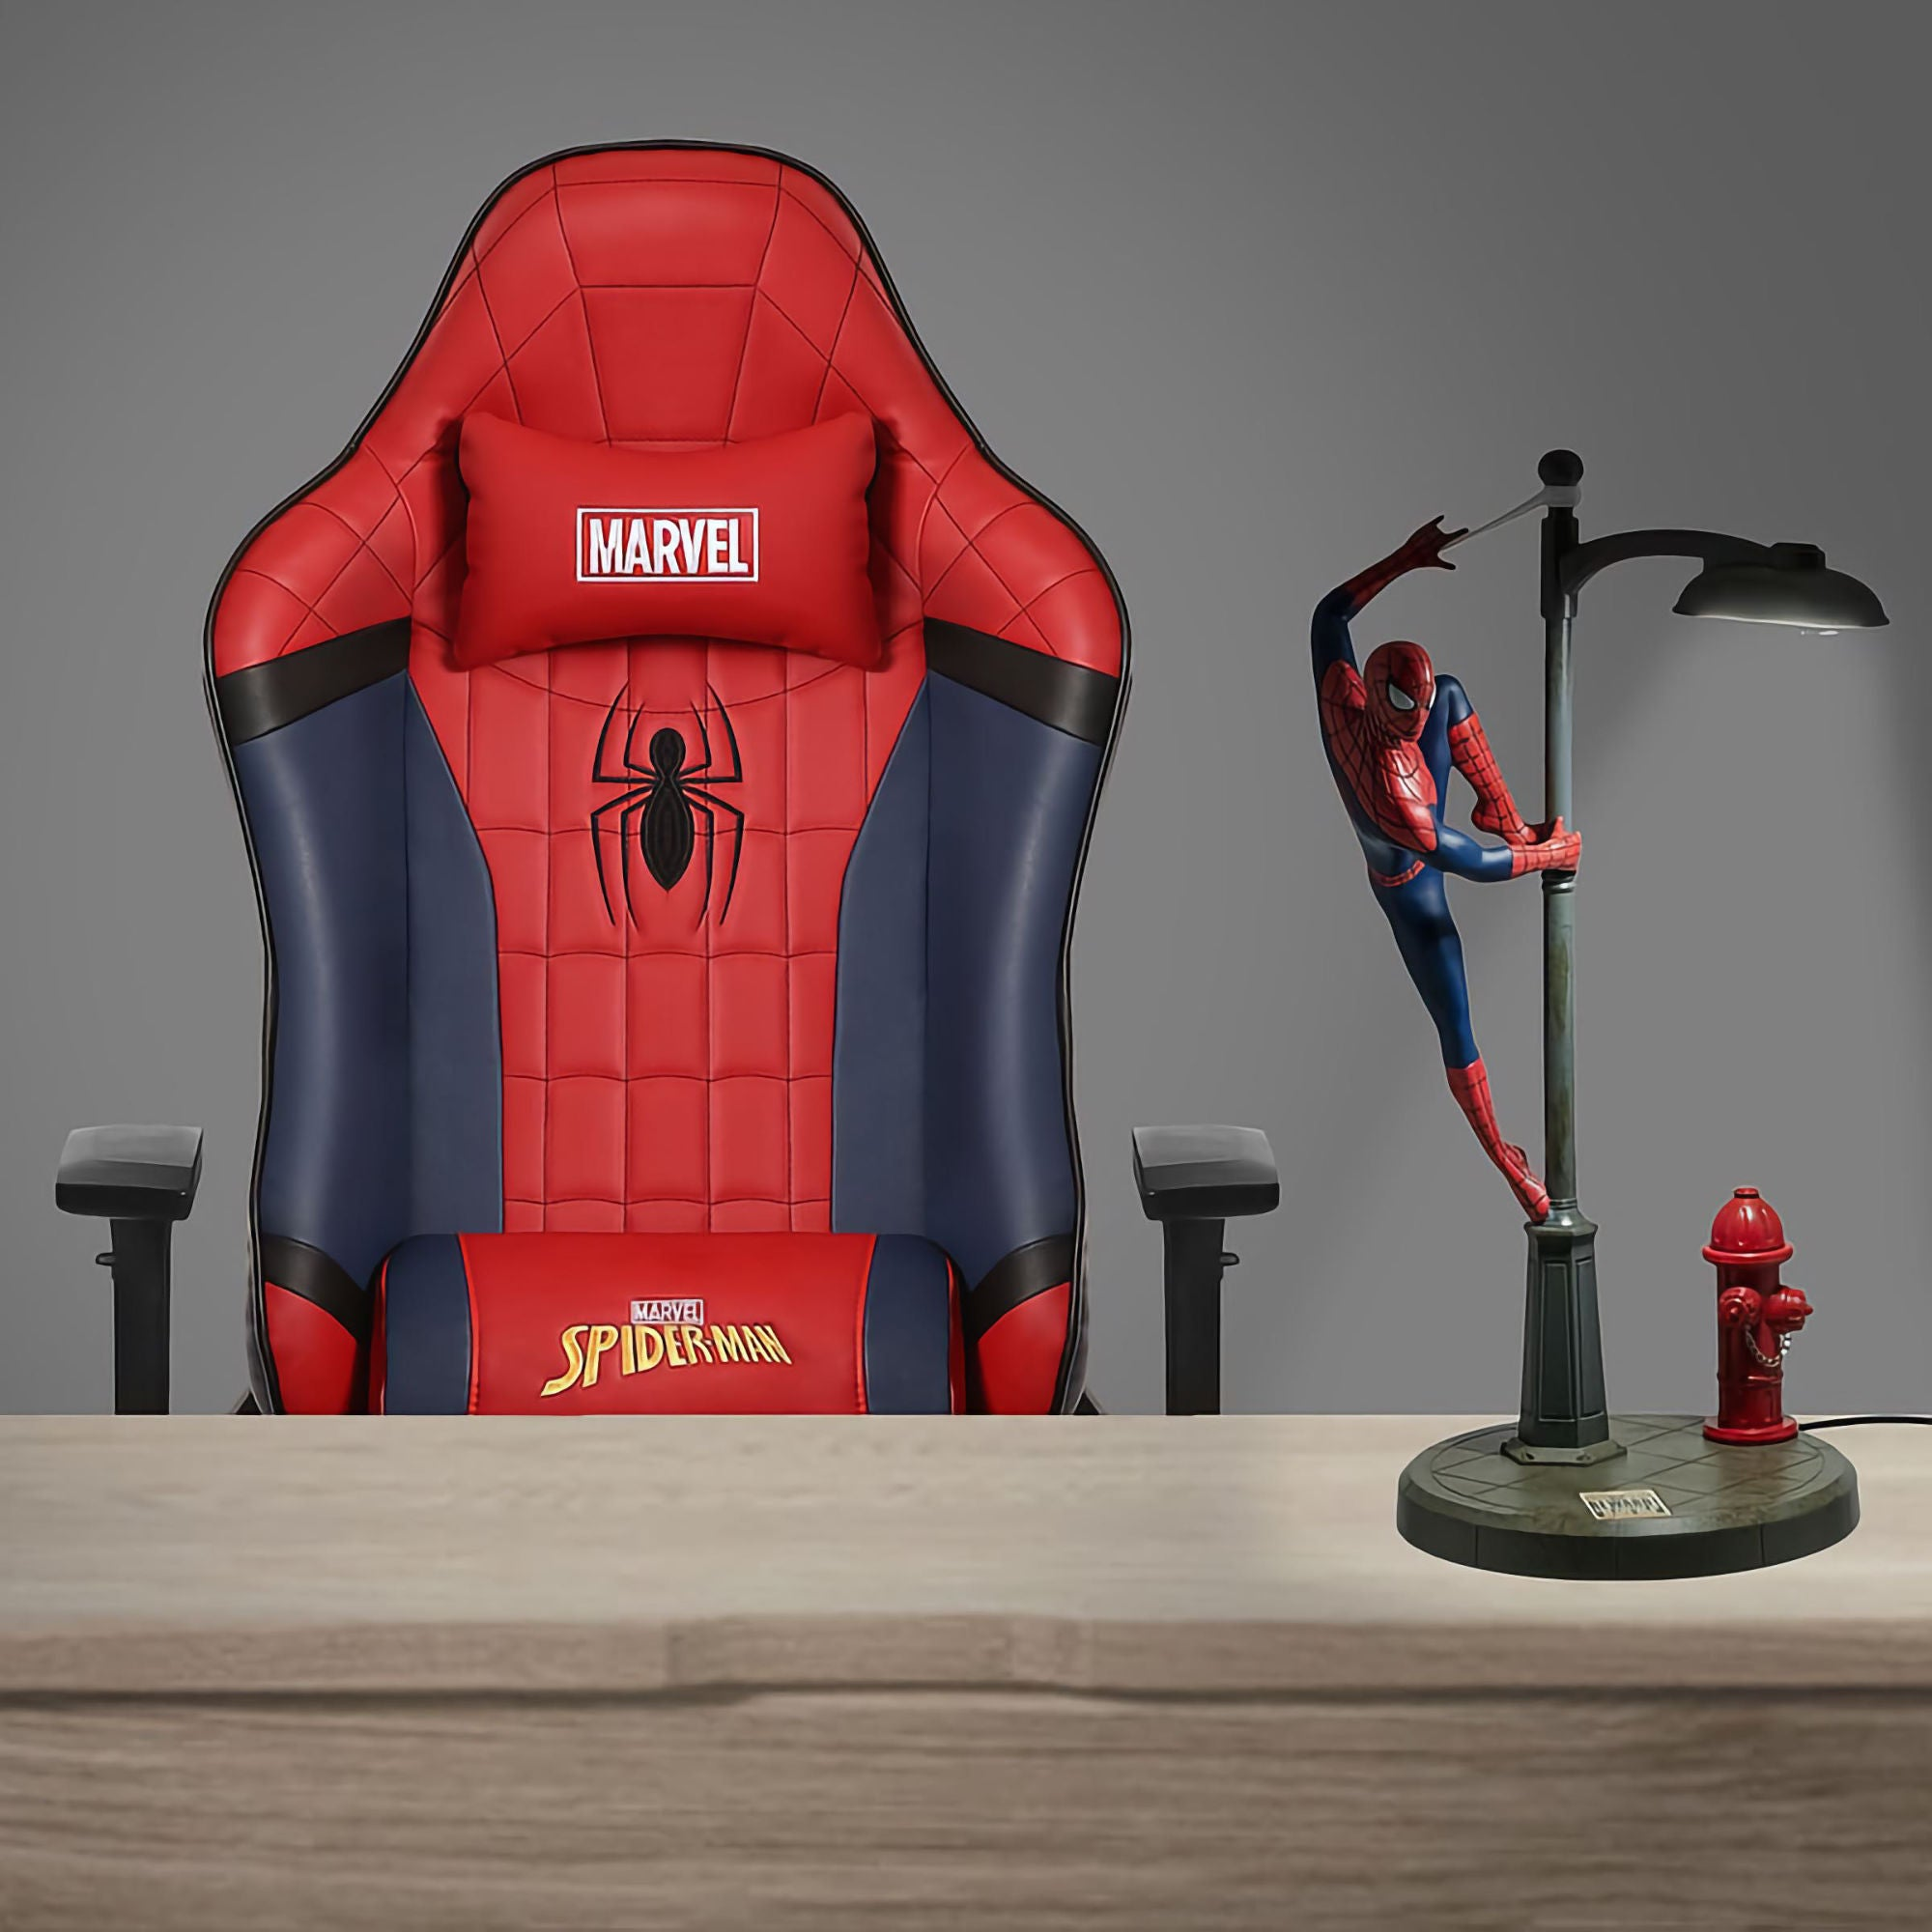 Marvel Avenger Spider Man Gaming Chair + Lamp Combo